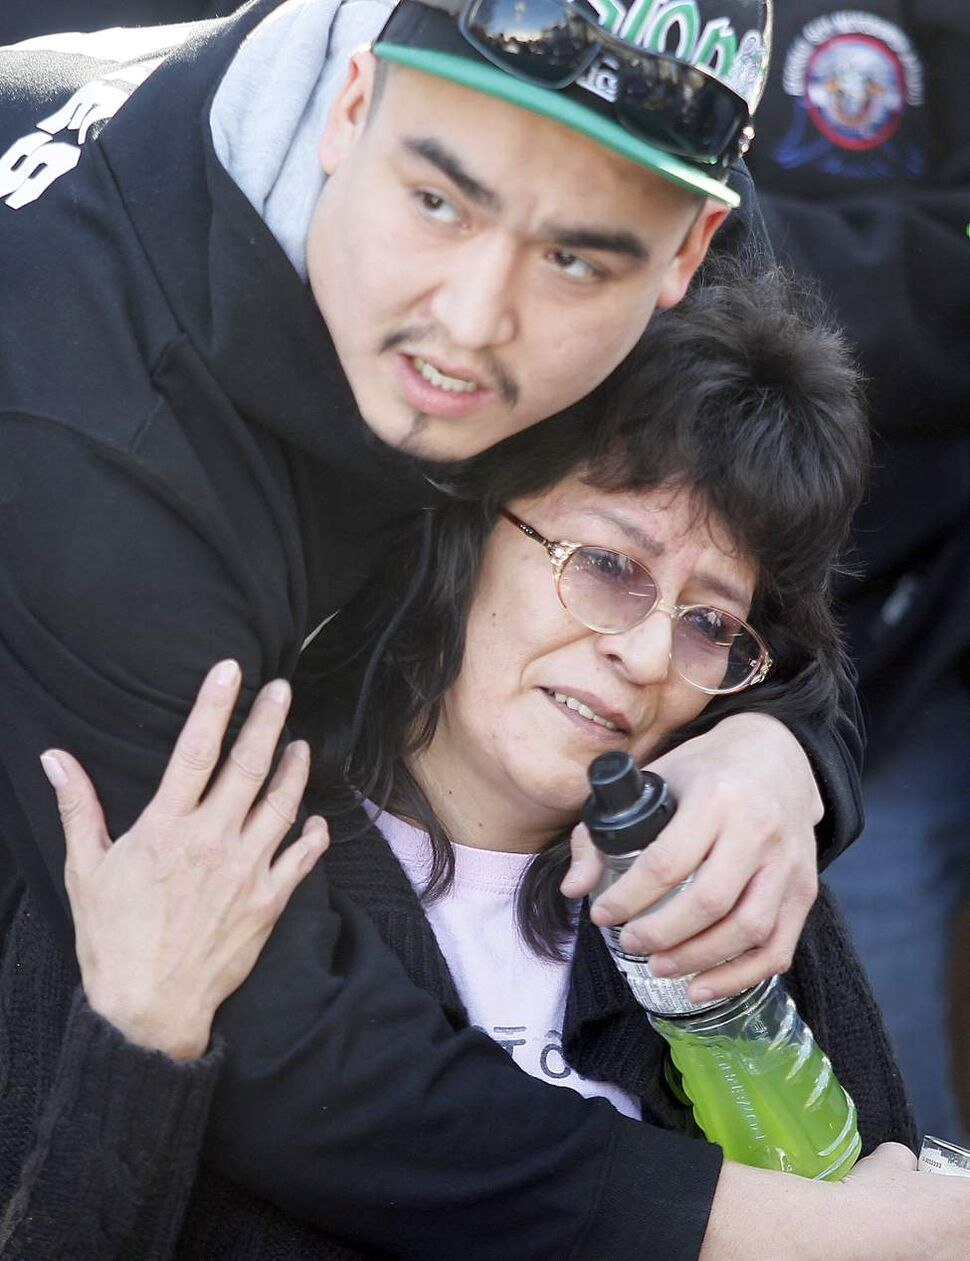 The mother of Carolyn Marie Sinclair is comforted at a vigil Tuesday April 3, 2012 for Carolyn Marie Sinclair and her unborn baby who were found murdered and dumped in a back lane on the 700 block of Notre Dame Avenue Saturday March 31, 2012.  (John Woods / Winnipeg Free Press)